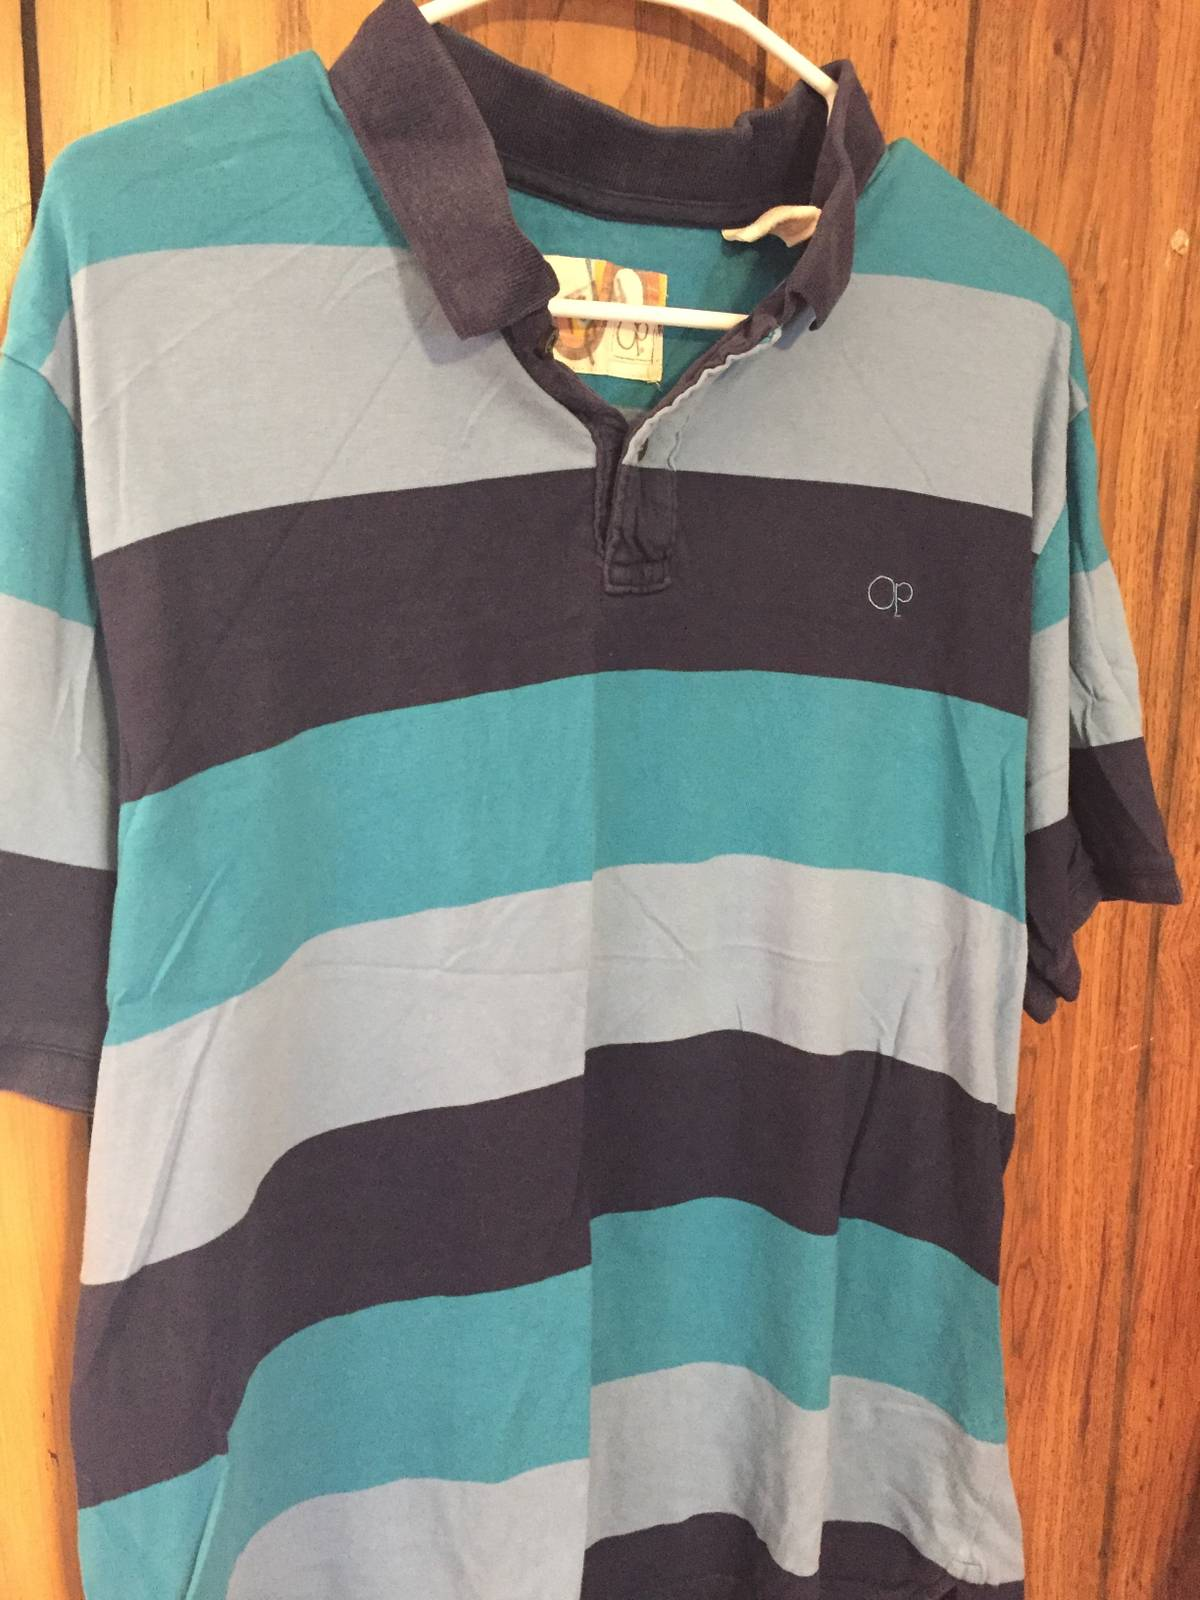 Opalona Op Polo Size Large Striped Size L Polos For Sale Grailed